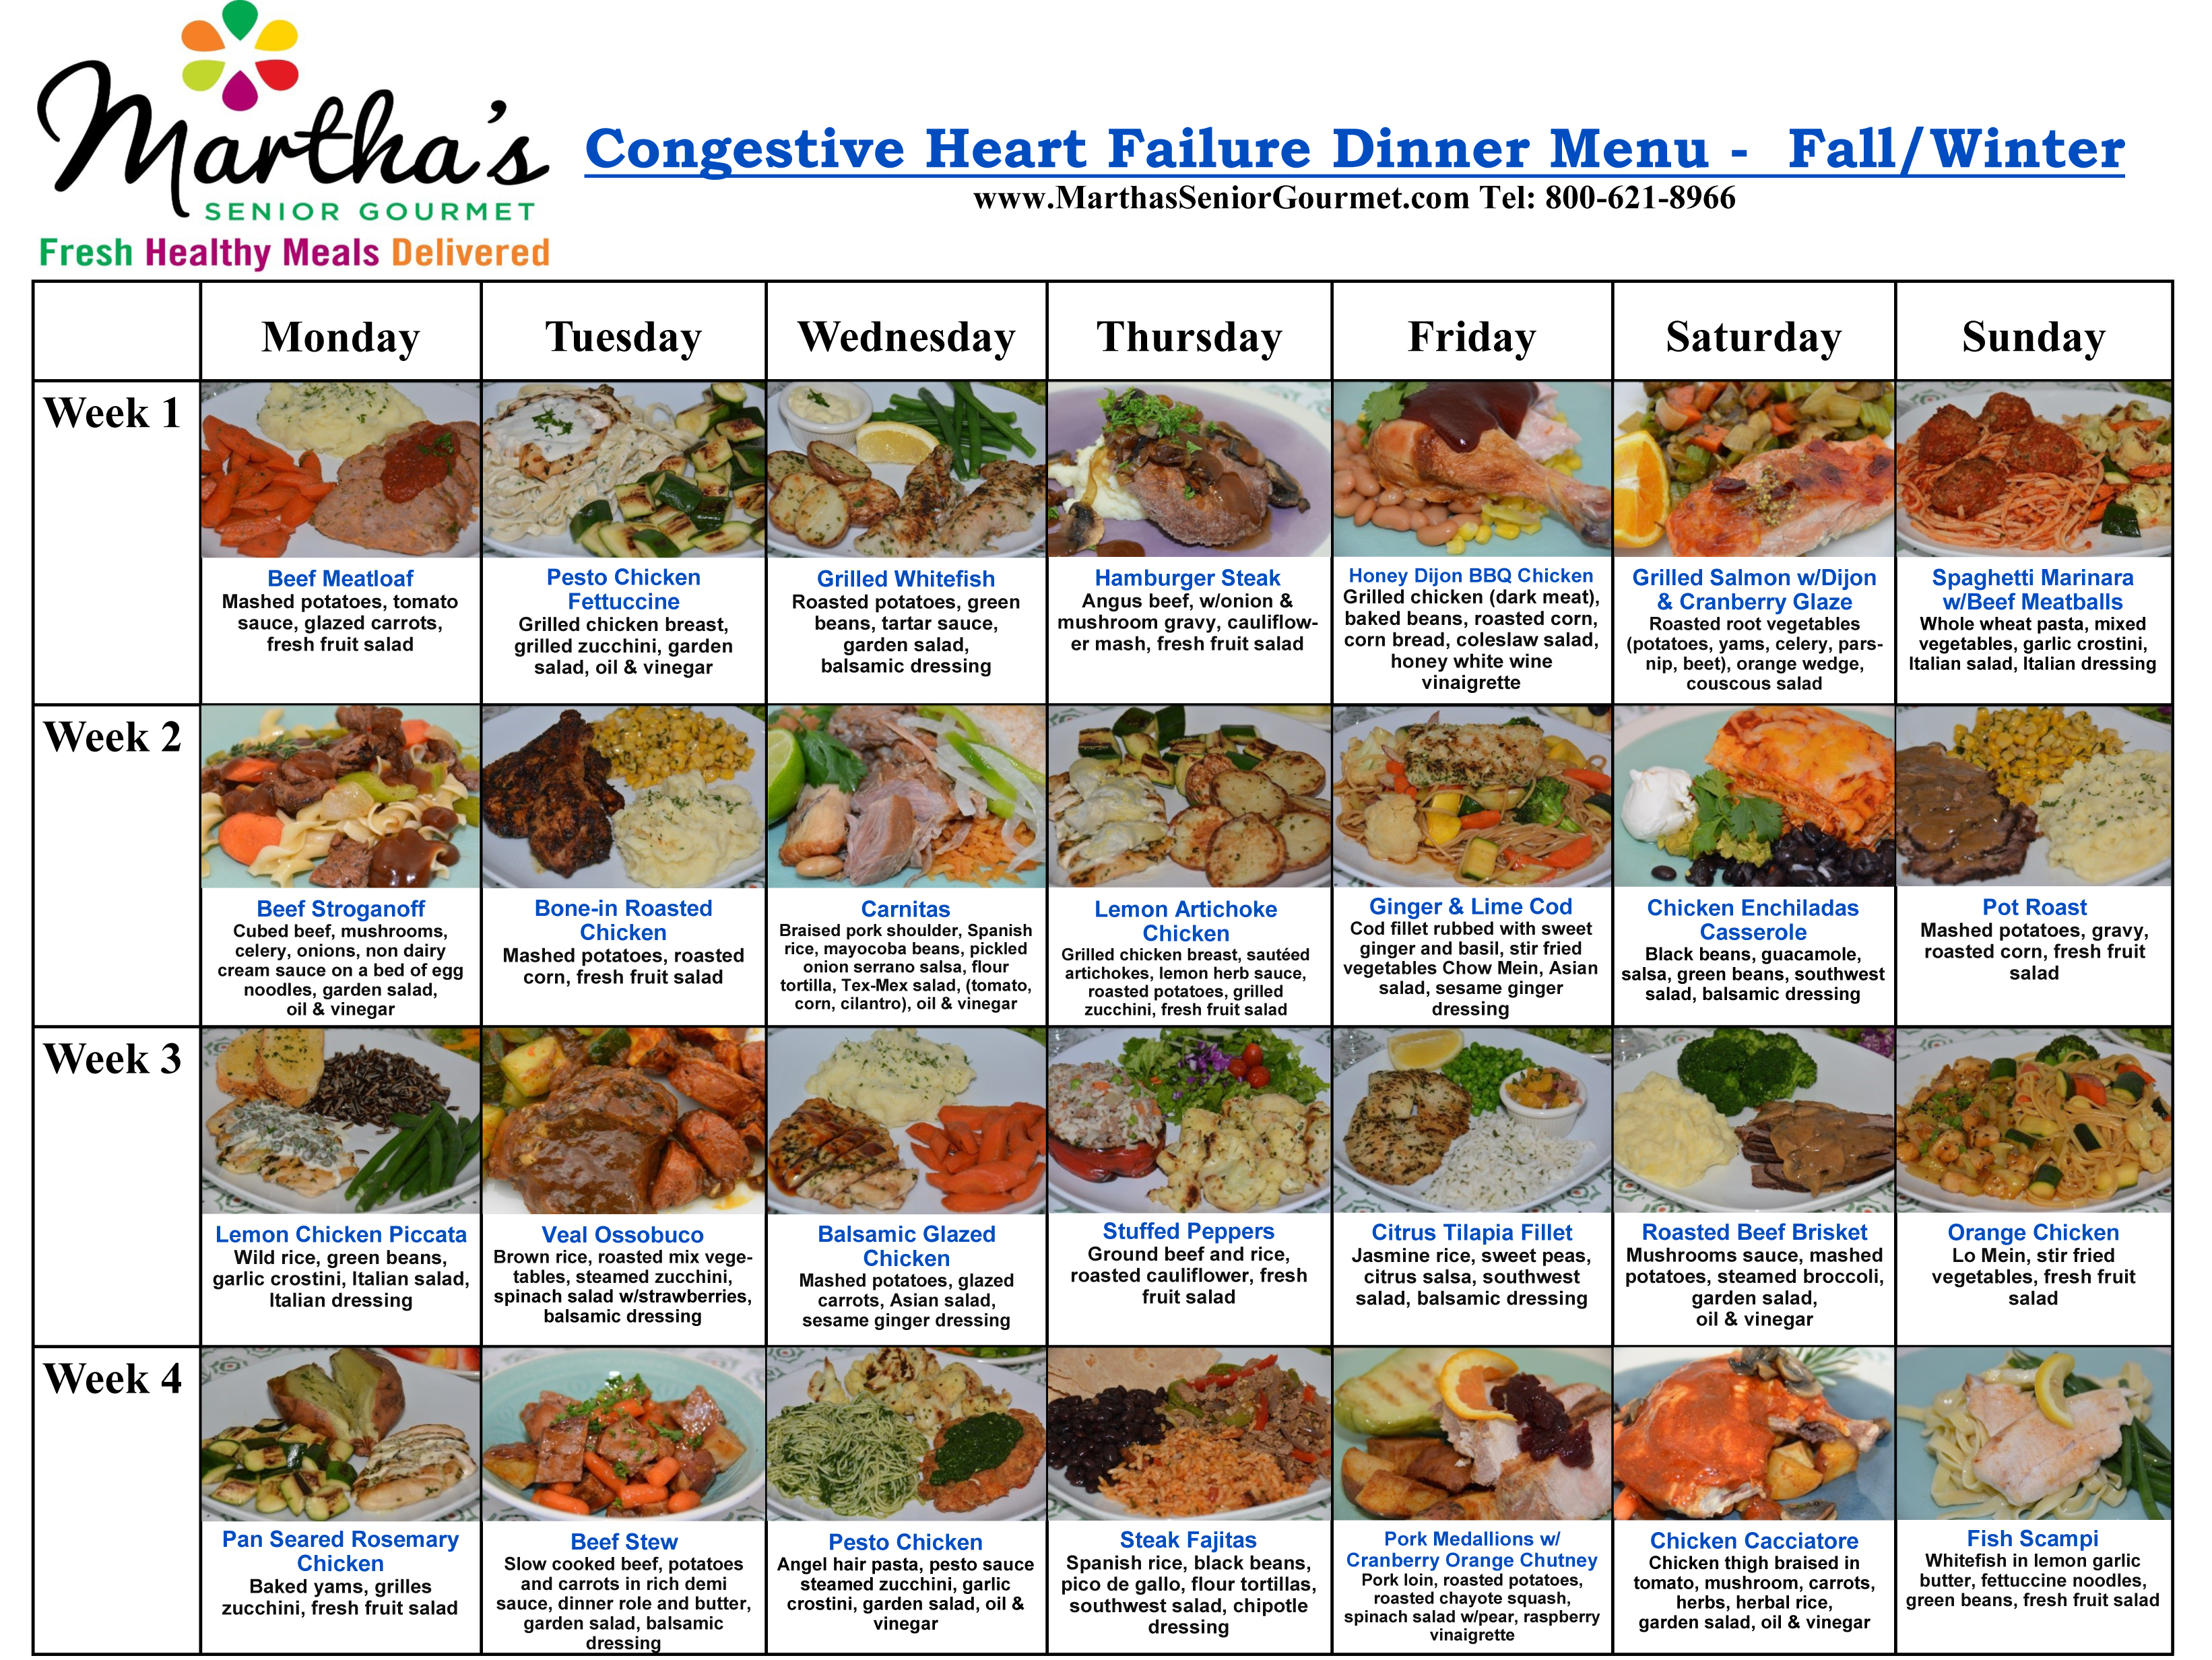 Martha's Senior Gourmet Congestive Heart Failure Dinner Menu - Fall/Winter